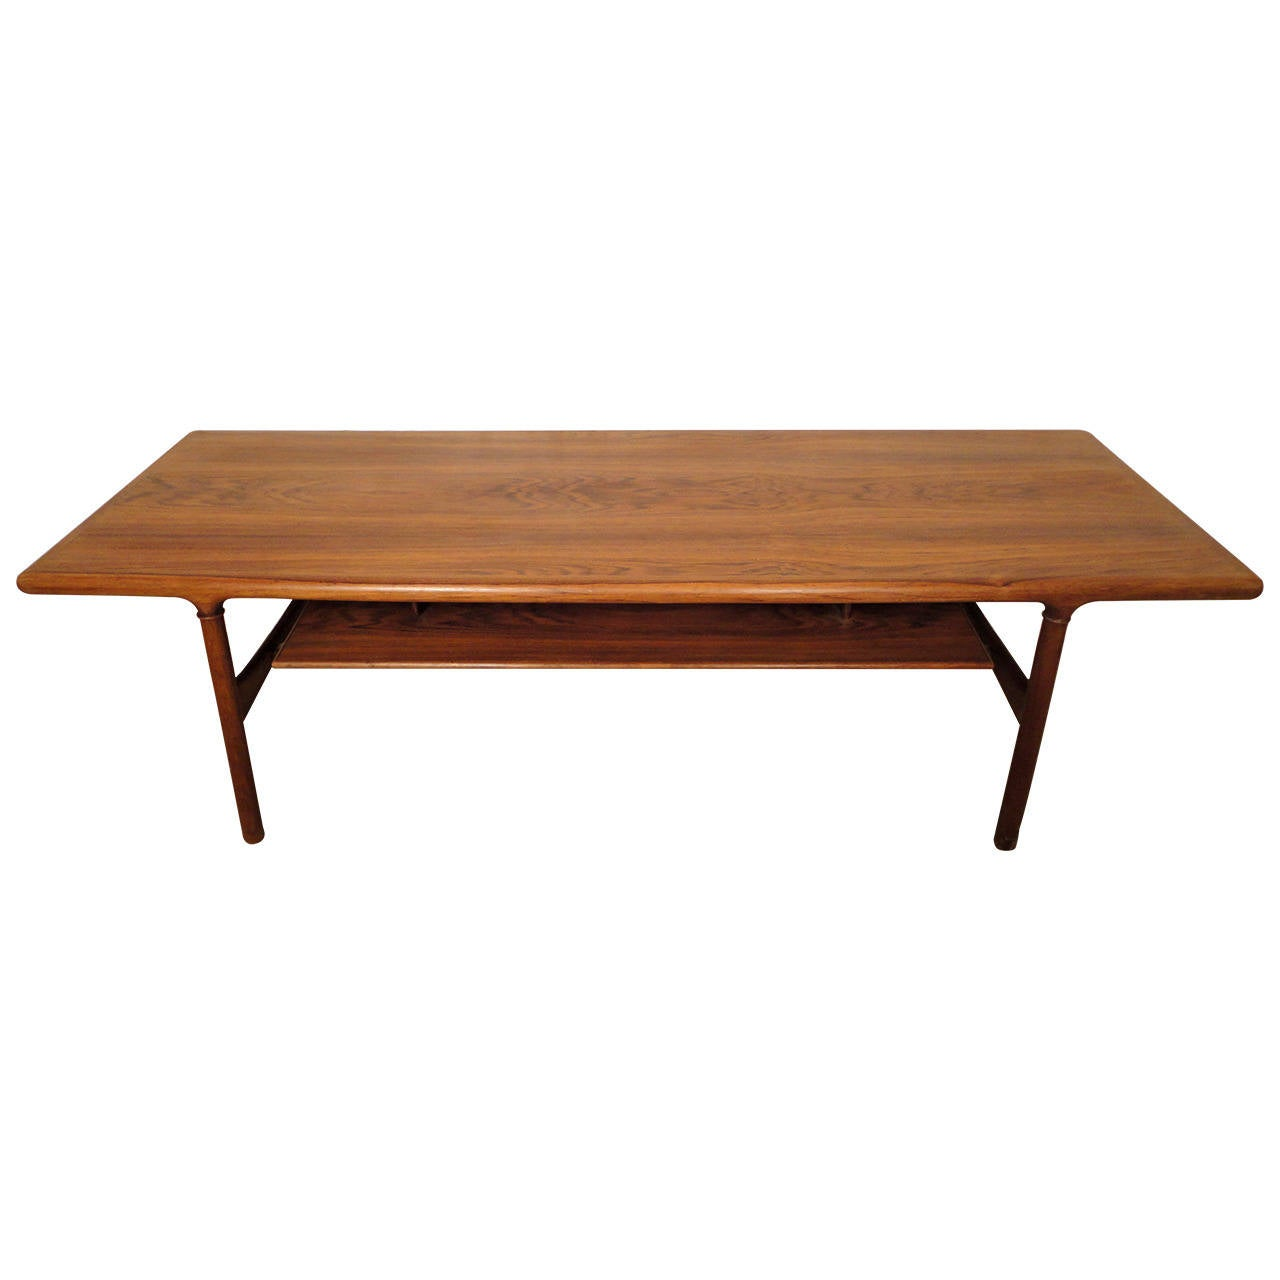 Rare Mid Century Extending Rosewood Coffee Table For Sale At 1stdibs